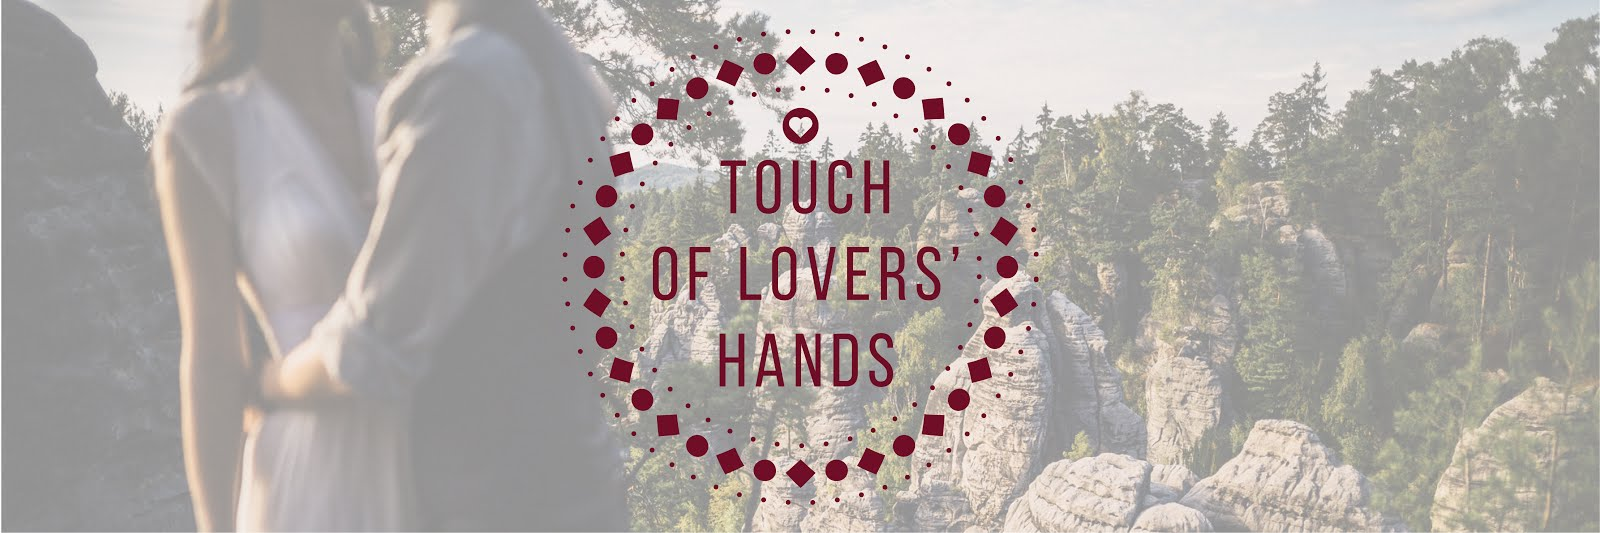 Touch of lovers' hands